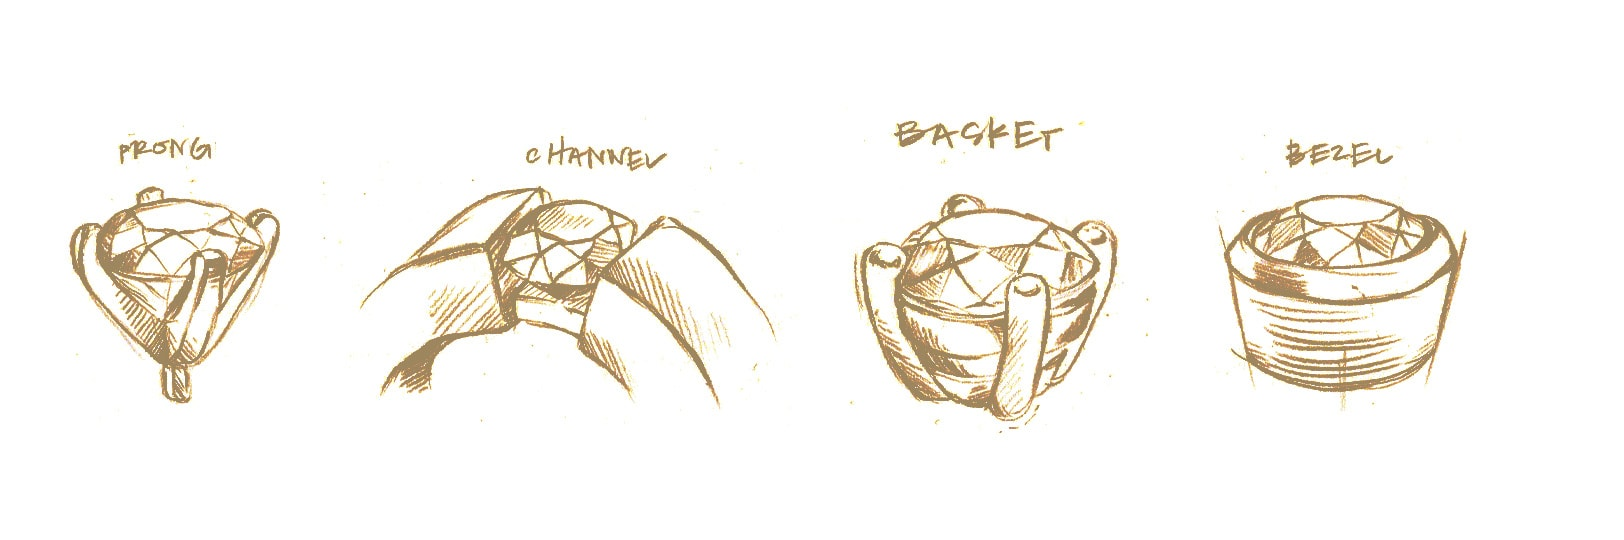 Sketch of different engagement ring head settings